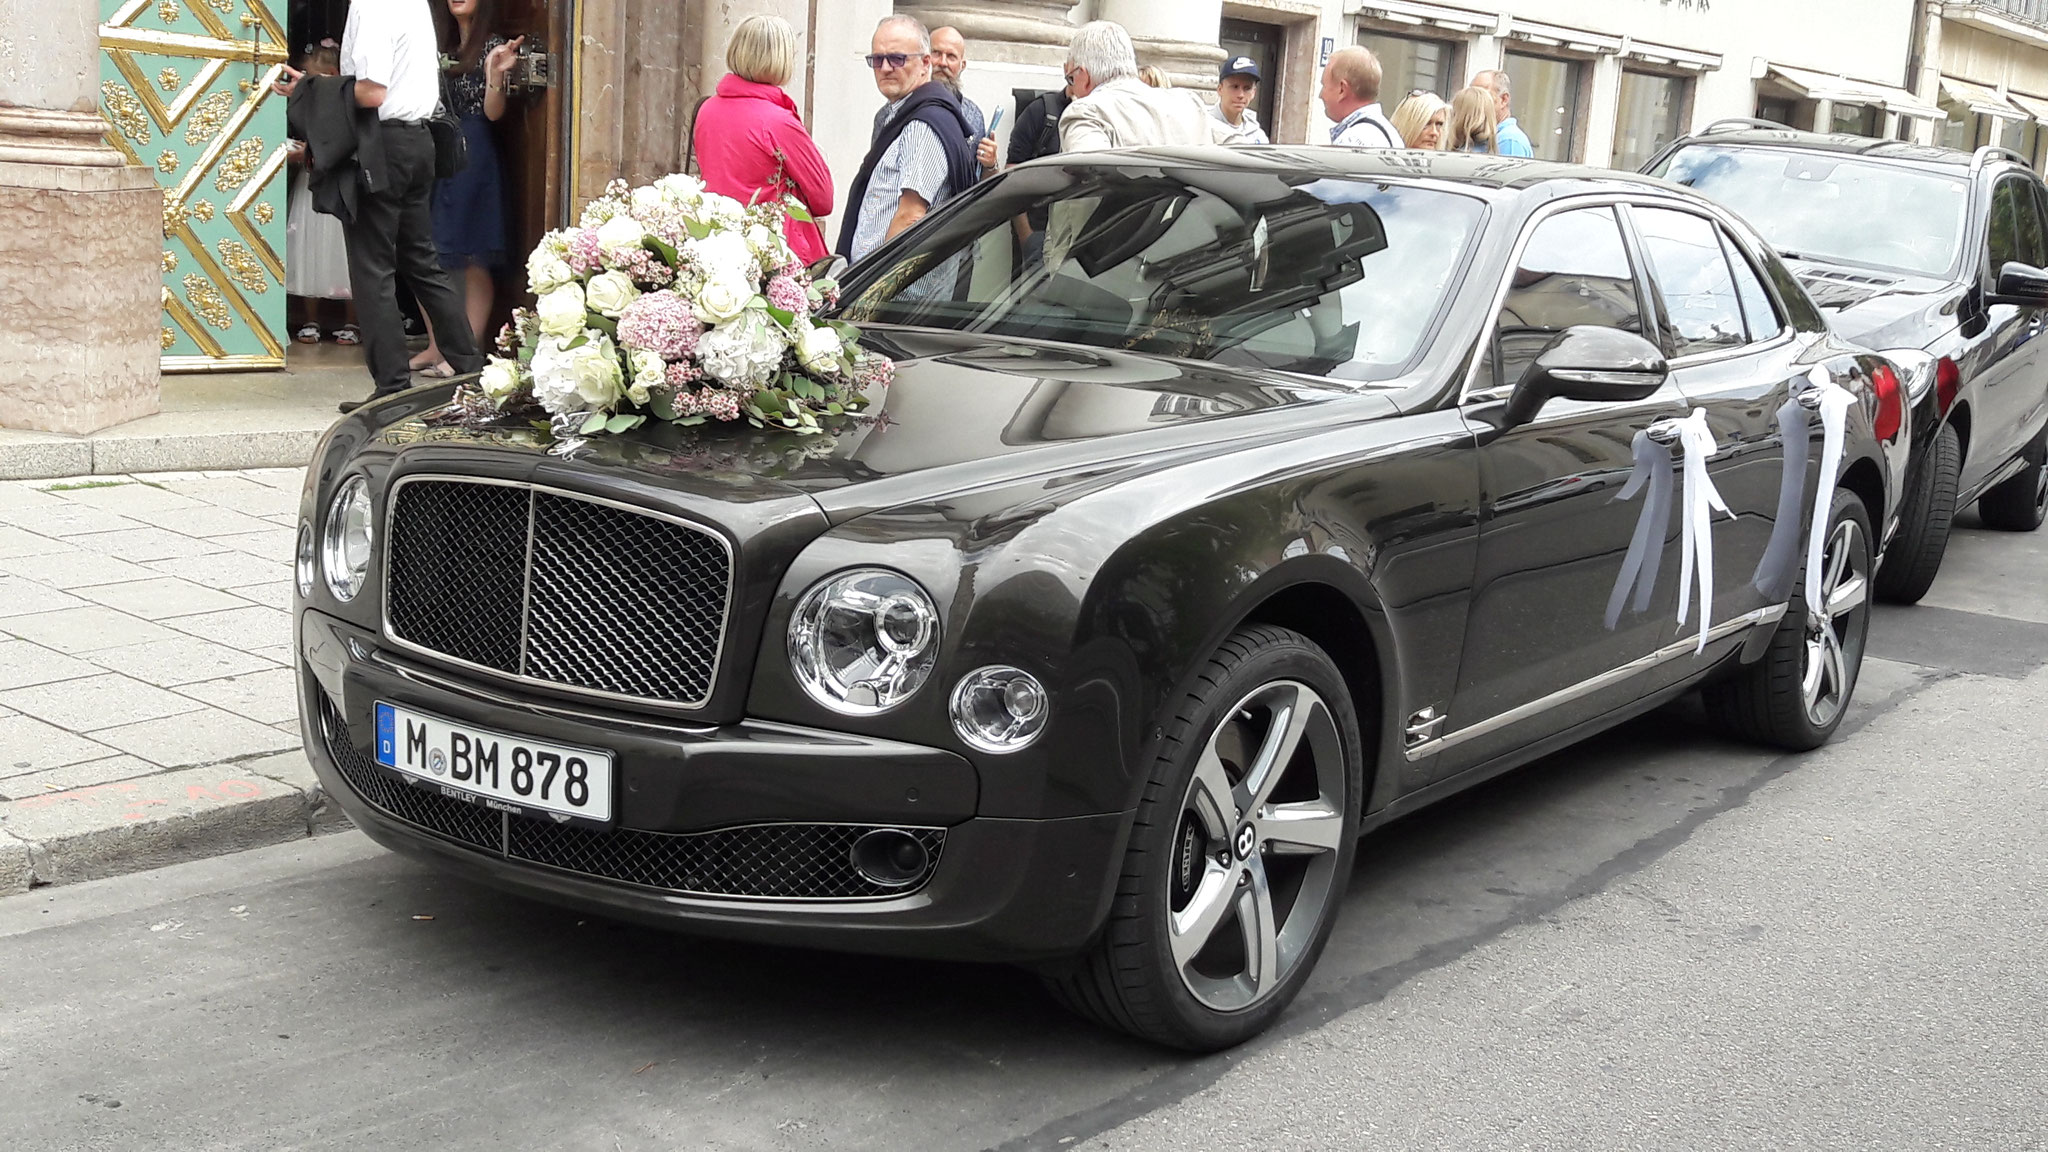 Bentley Mulsanne - M-BM-878